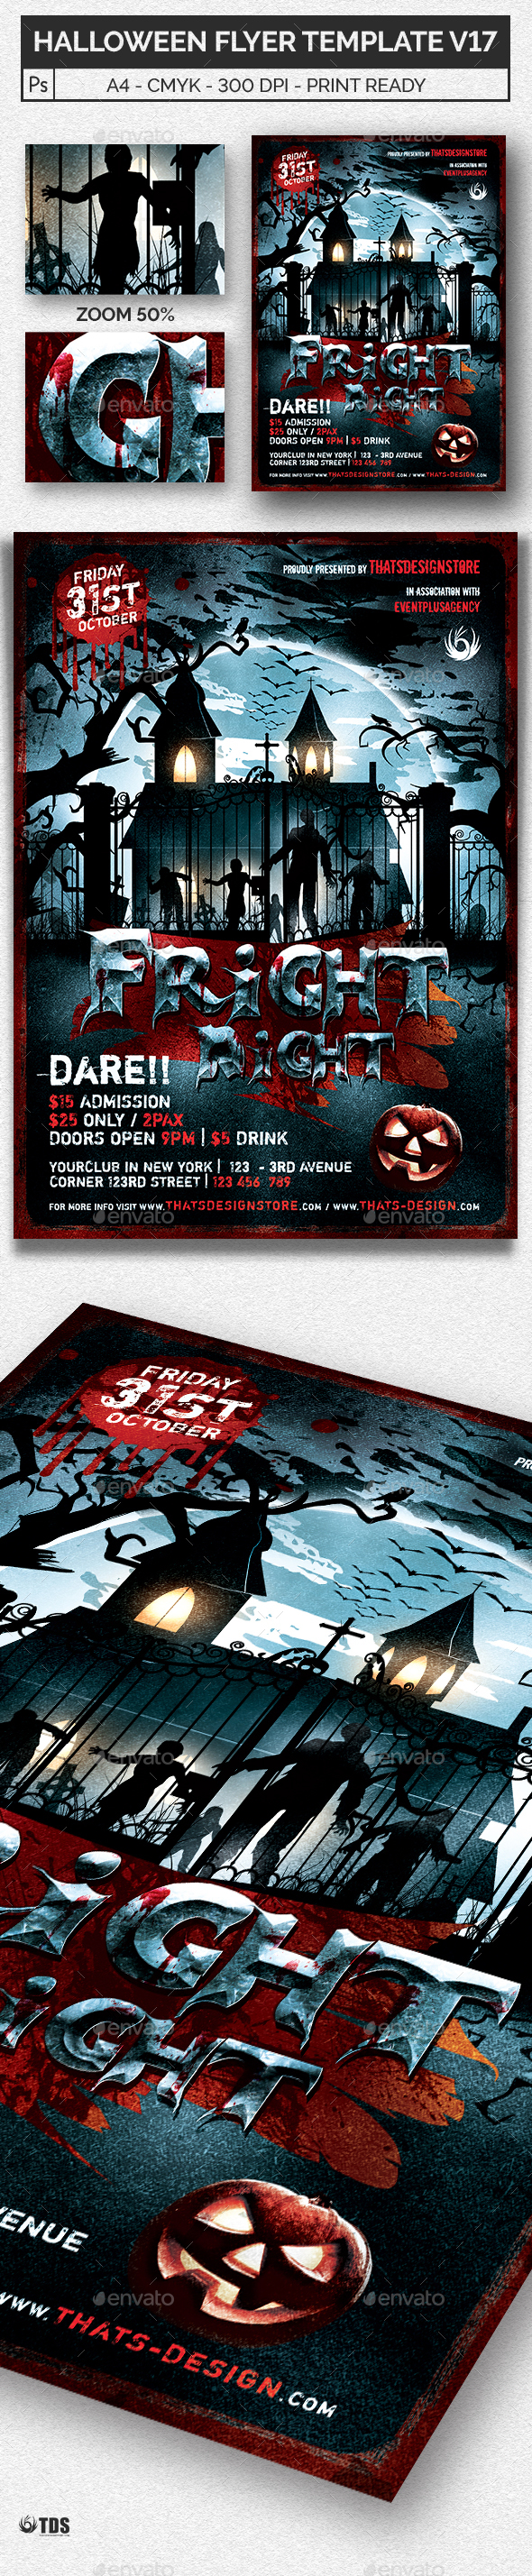 Halloween Flyer Template V17 - Holidays Events